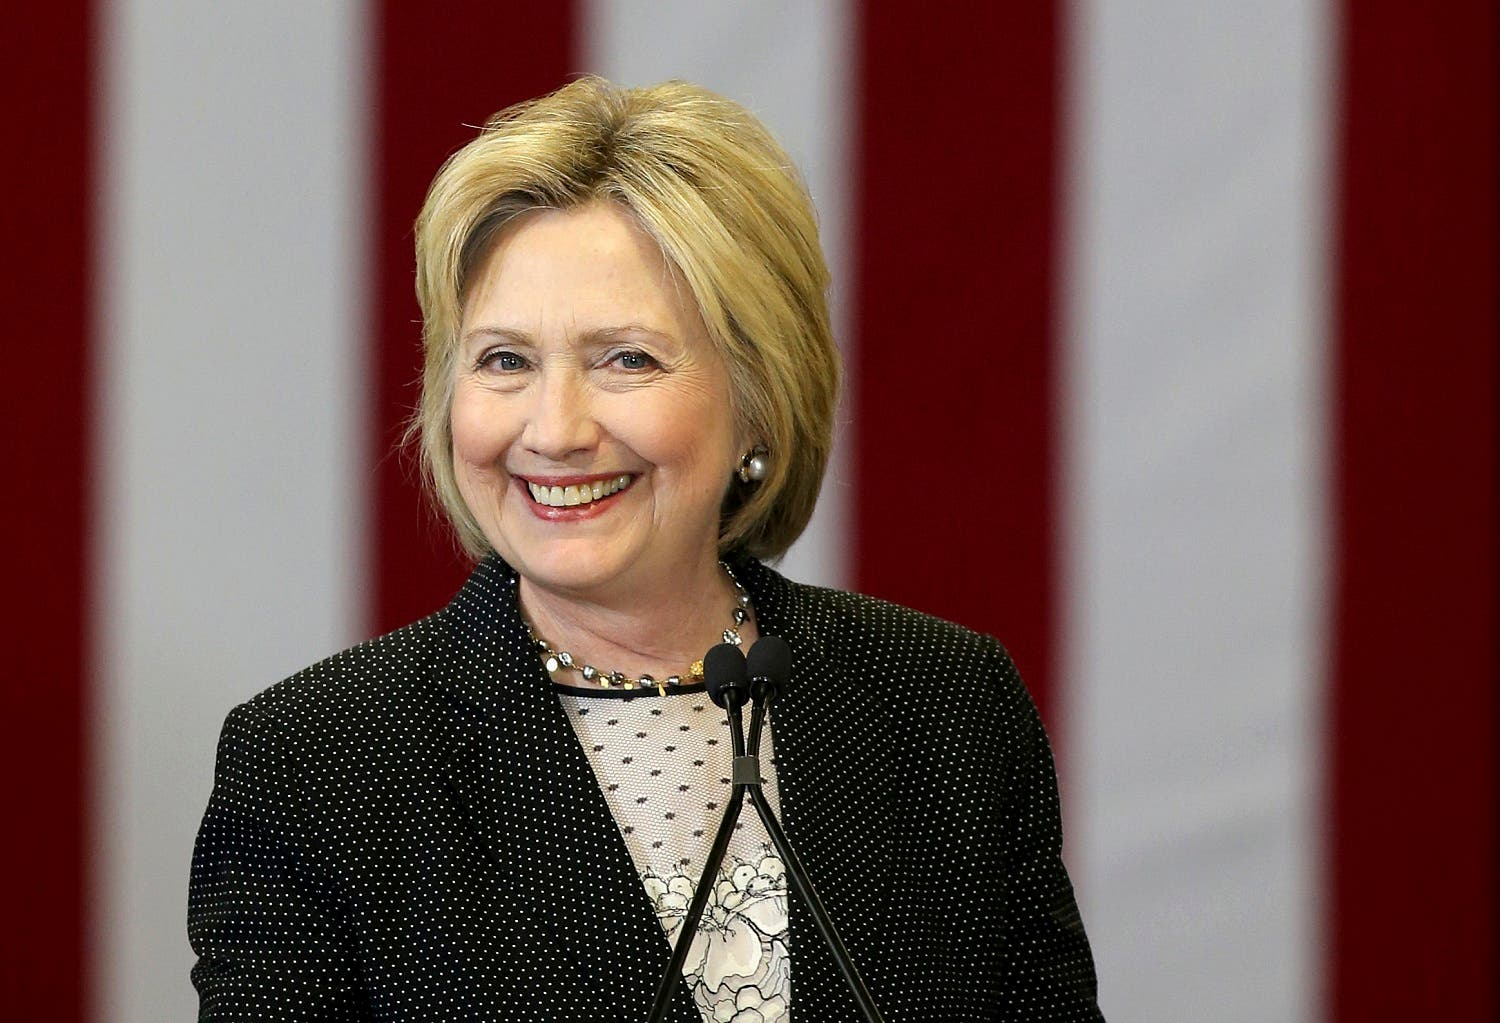 Clinton will become the party's standard-bearer against Republican nominee Donald Trump in the Nov. 8 election. (Reuters)